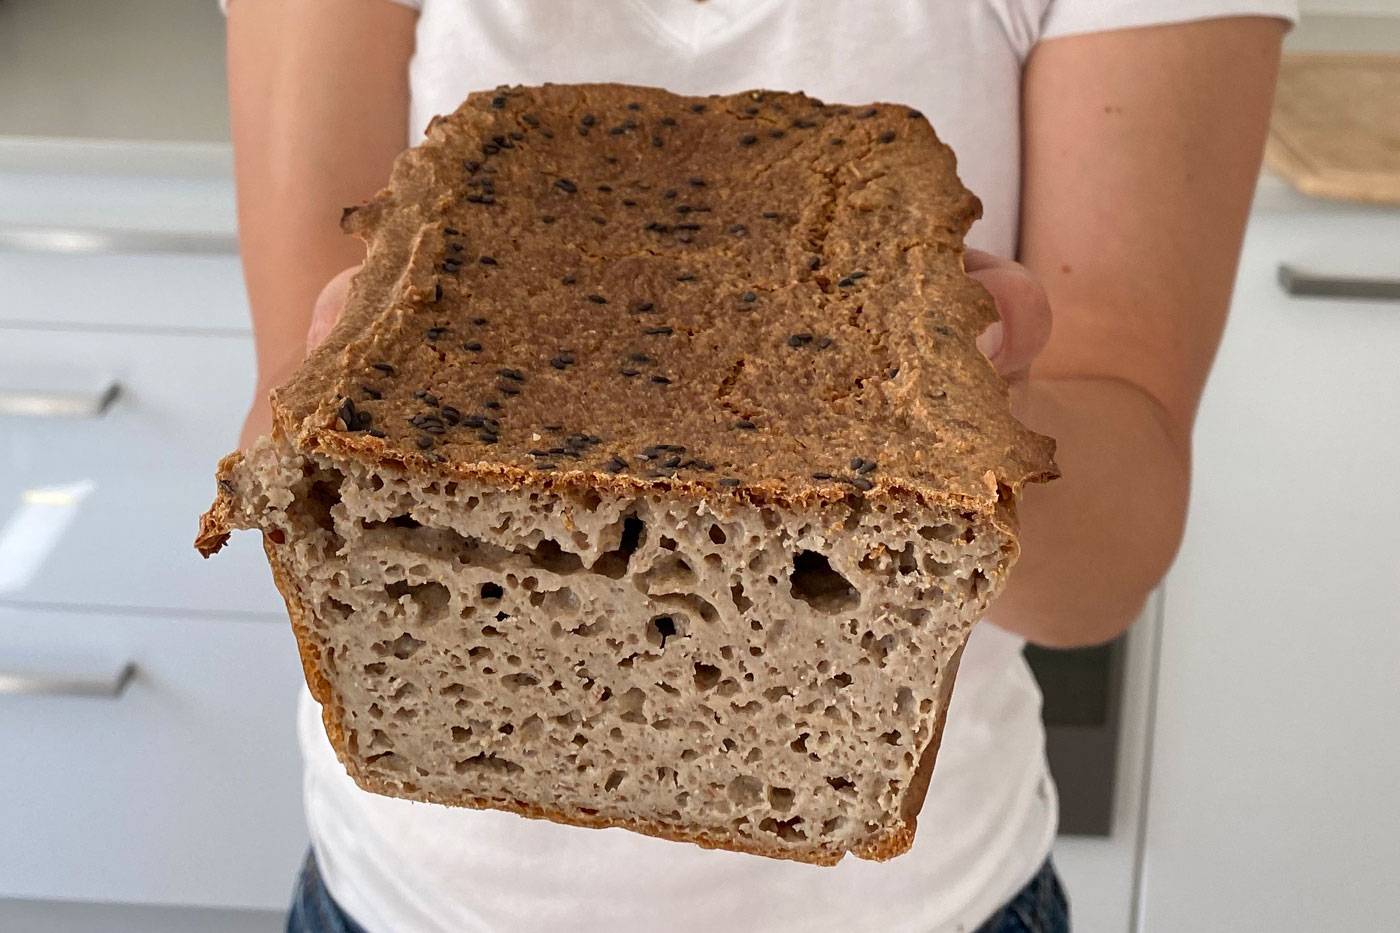 This buckwheat&quinoa bread is gluten free and yeast free